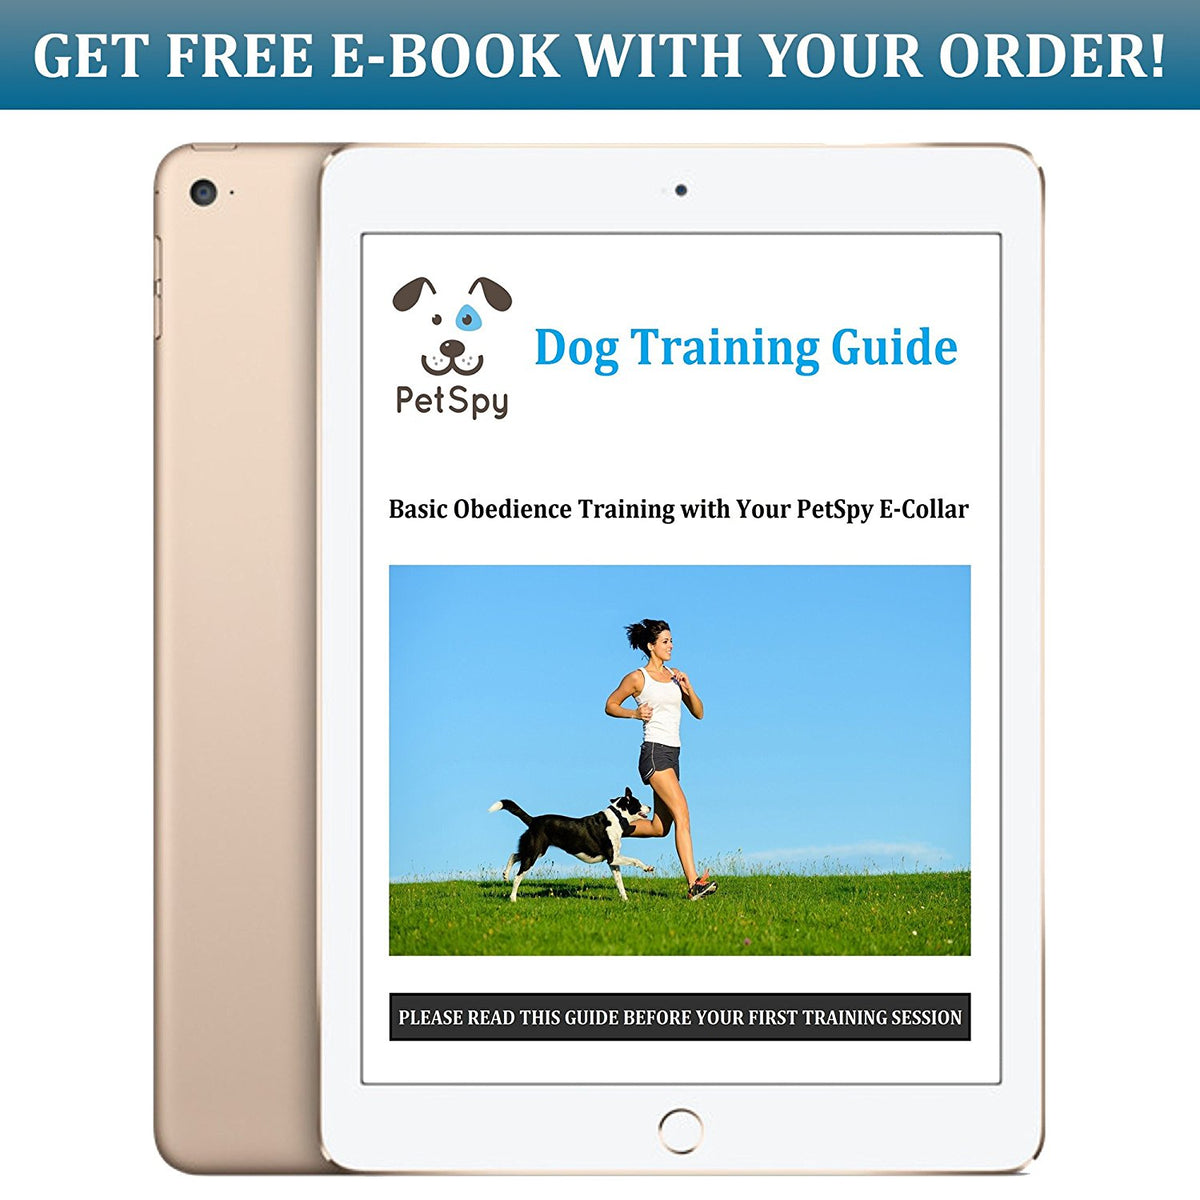 Get free e-book with dog training tips from PetSpy with your order